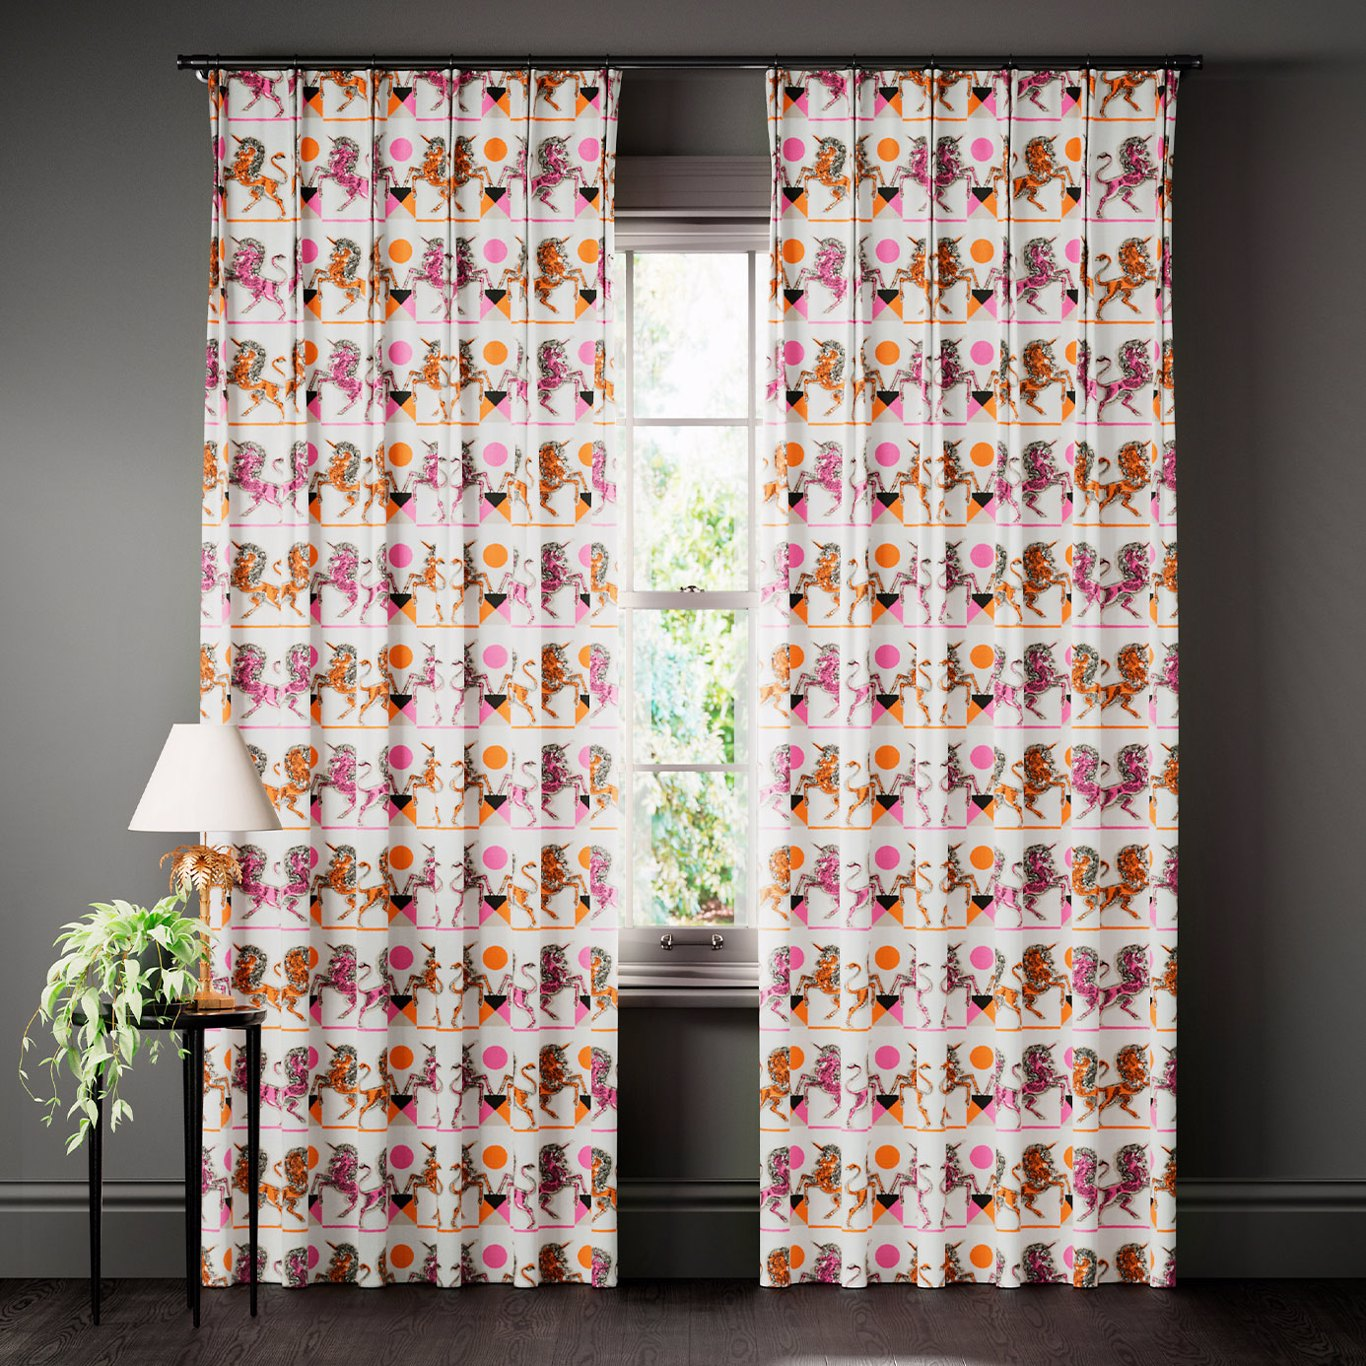 Elixir of Life Curtains by ARC